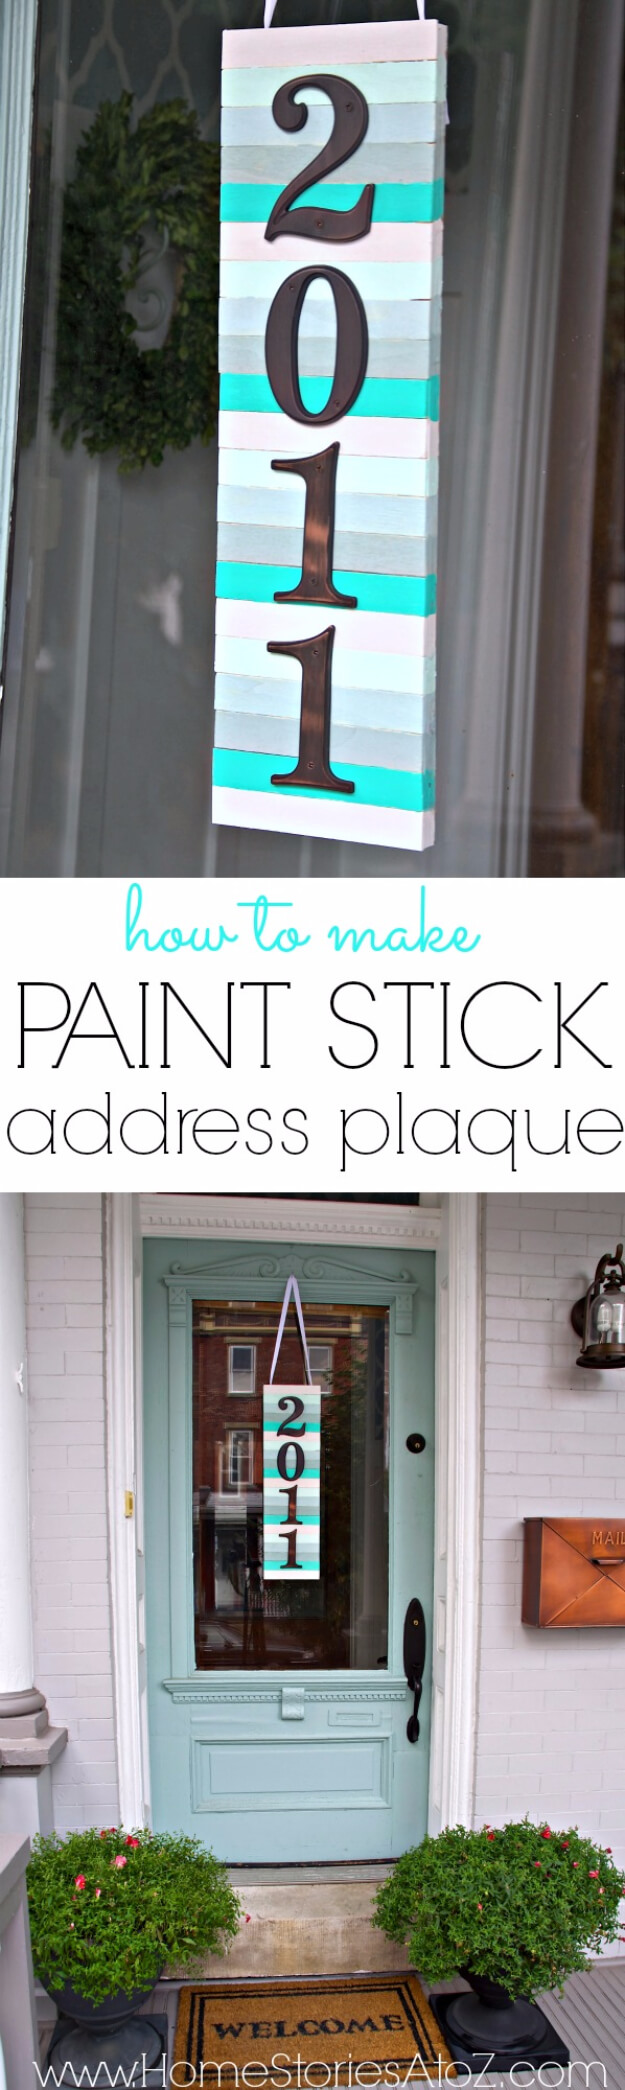 Best Images About Metal Panel Siding On Pinterest - Best creative house number ideas